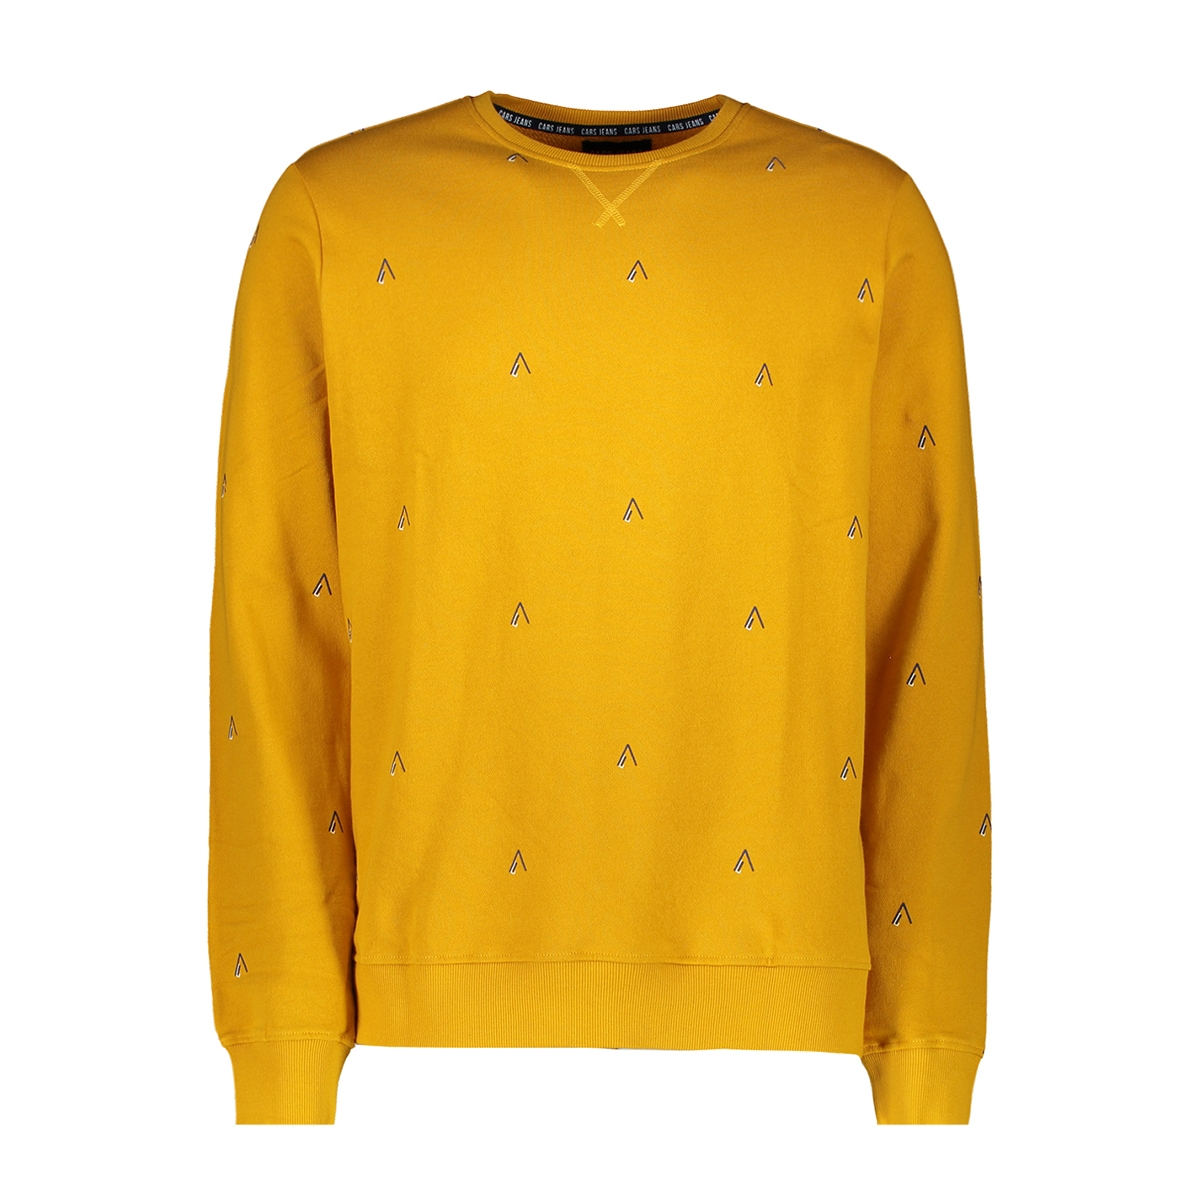 cento sweater 4151029 cars sweater ocre